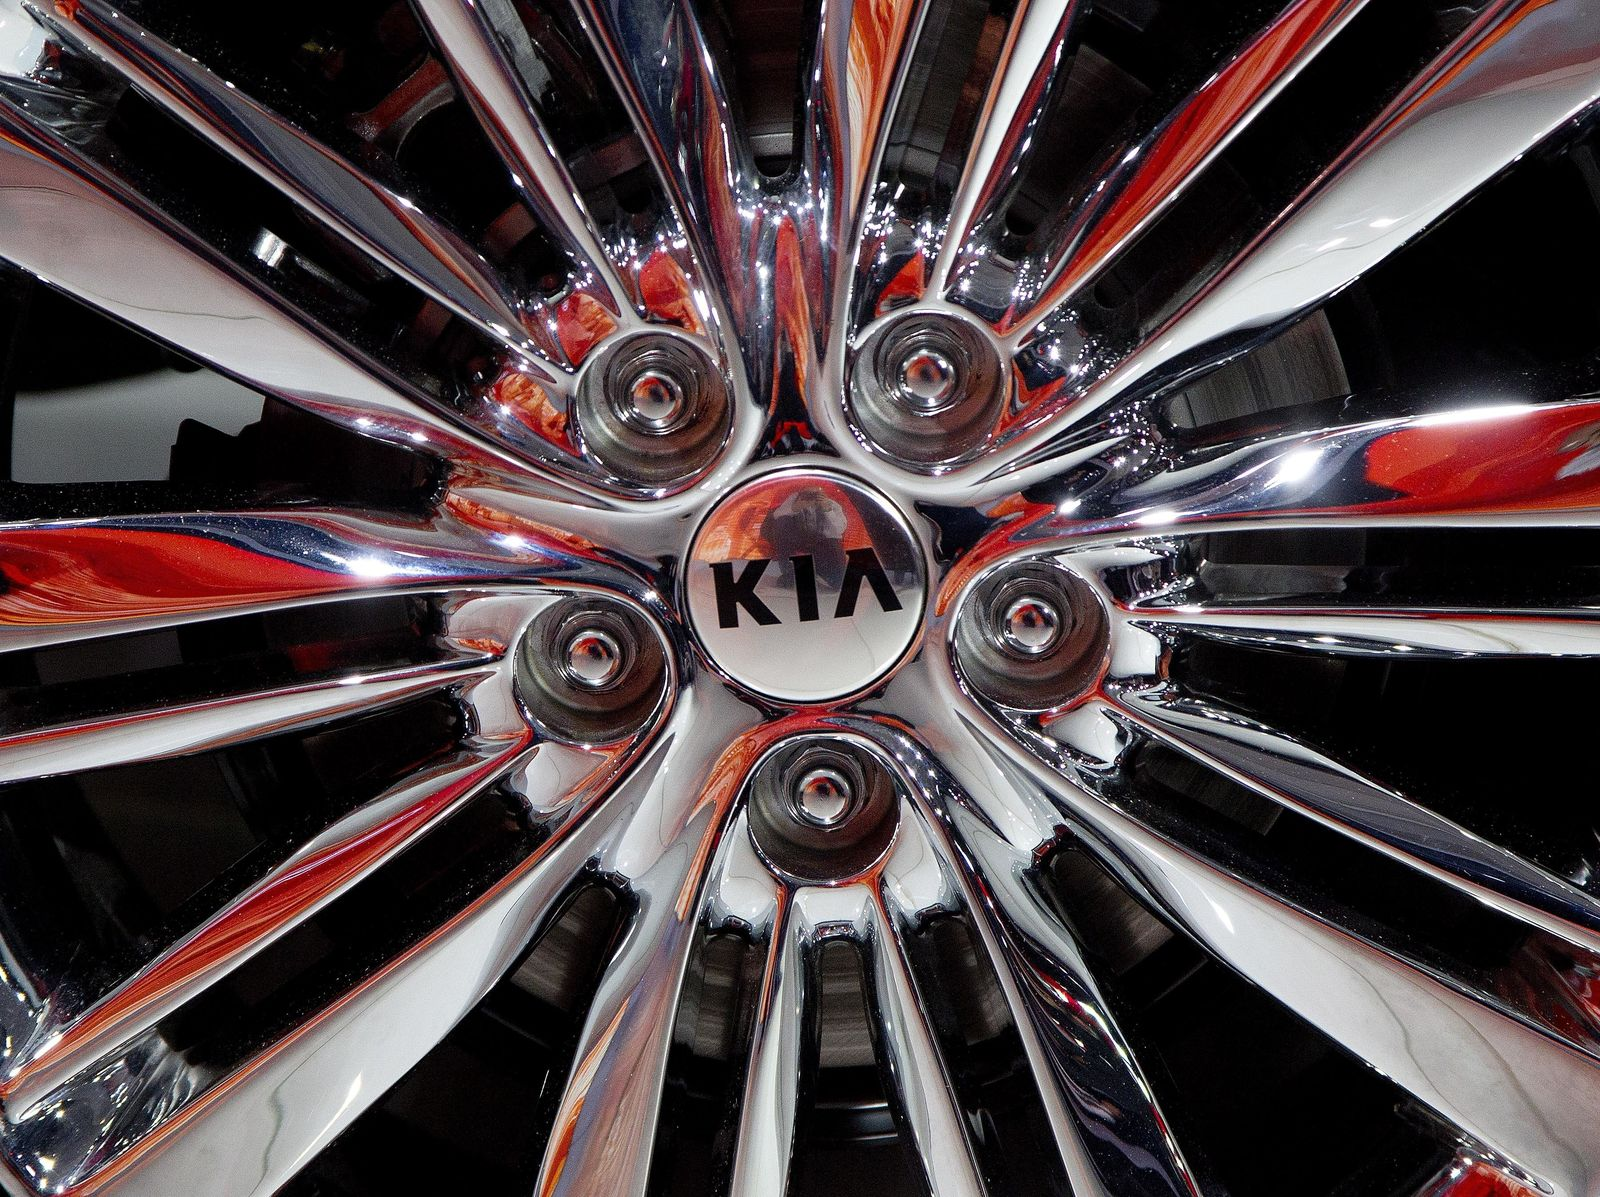 Kia is joining its affiliate Hyundai in recalling thousands of vehicles in the U.S. because water can get into a brake computer, cause an electrical short and possibly a fire.(AP Photo/Mark Lennihan, File)